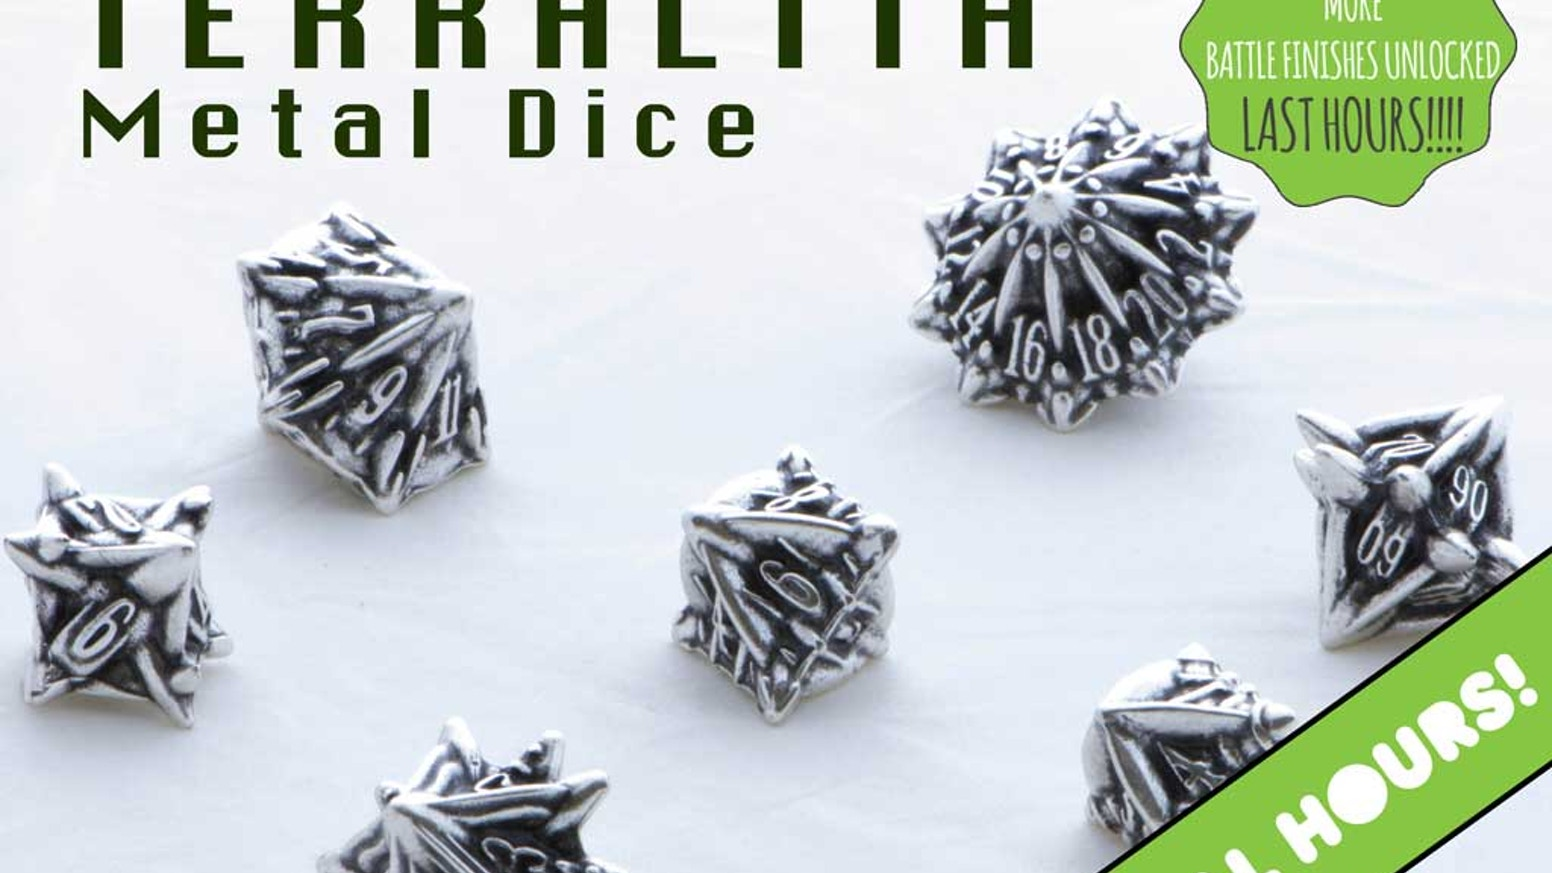 Terralith are organically designed metal dice - a thematic upgrade to your RPG/D&D dice collection, available in 12 different finishes. Missed the Kickstarter? Don't worry!